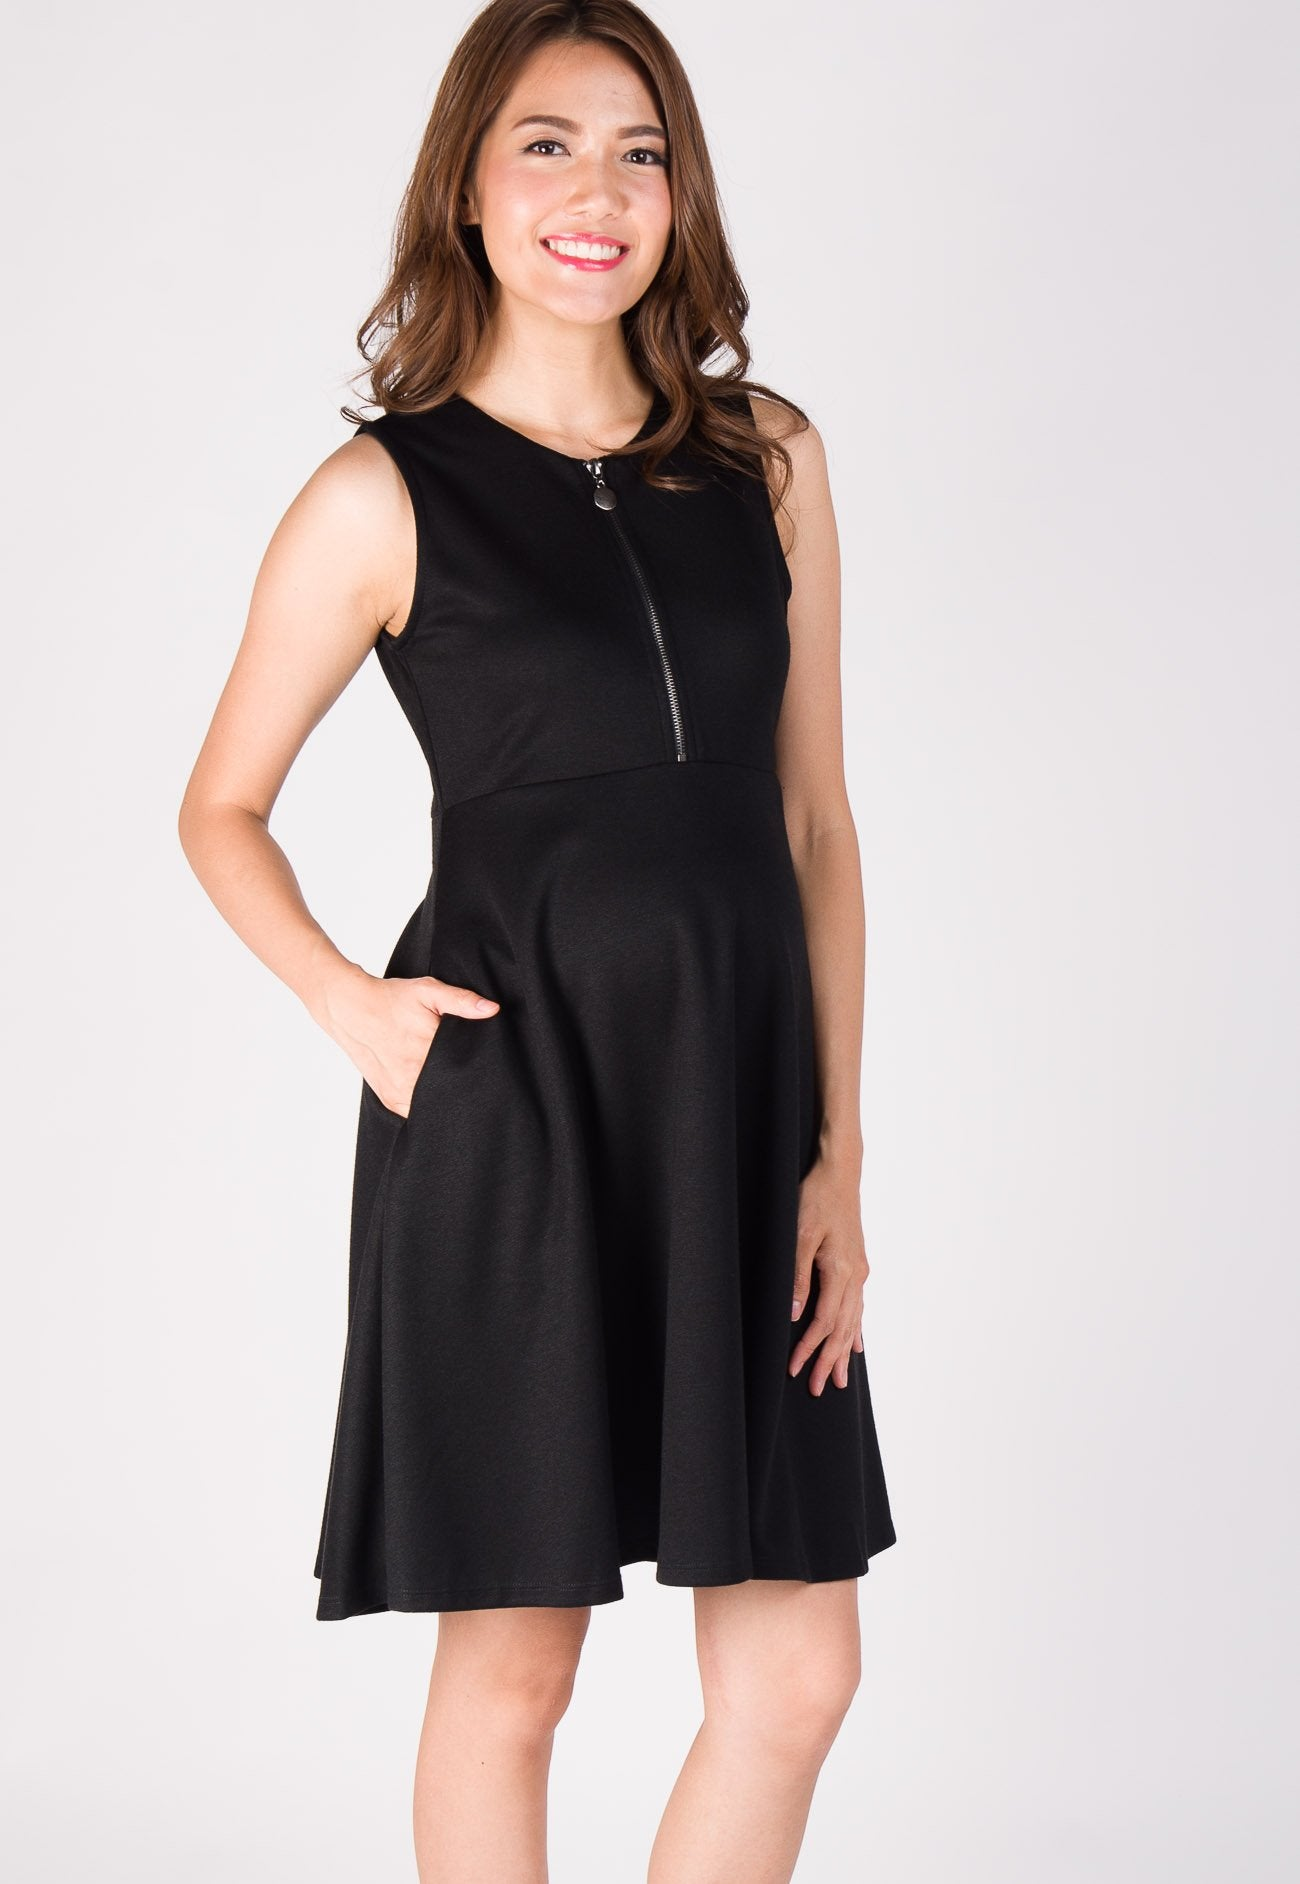 Fit and Flair Front Zip Nursing Dress in Black Nursing Wear Mothercot